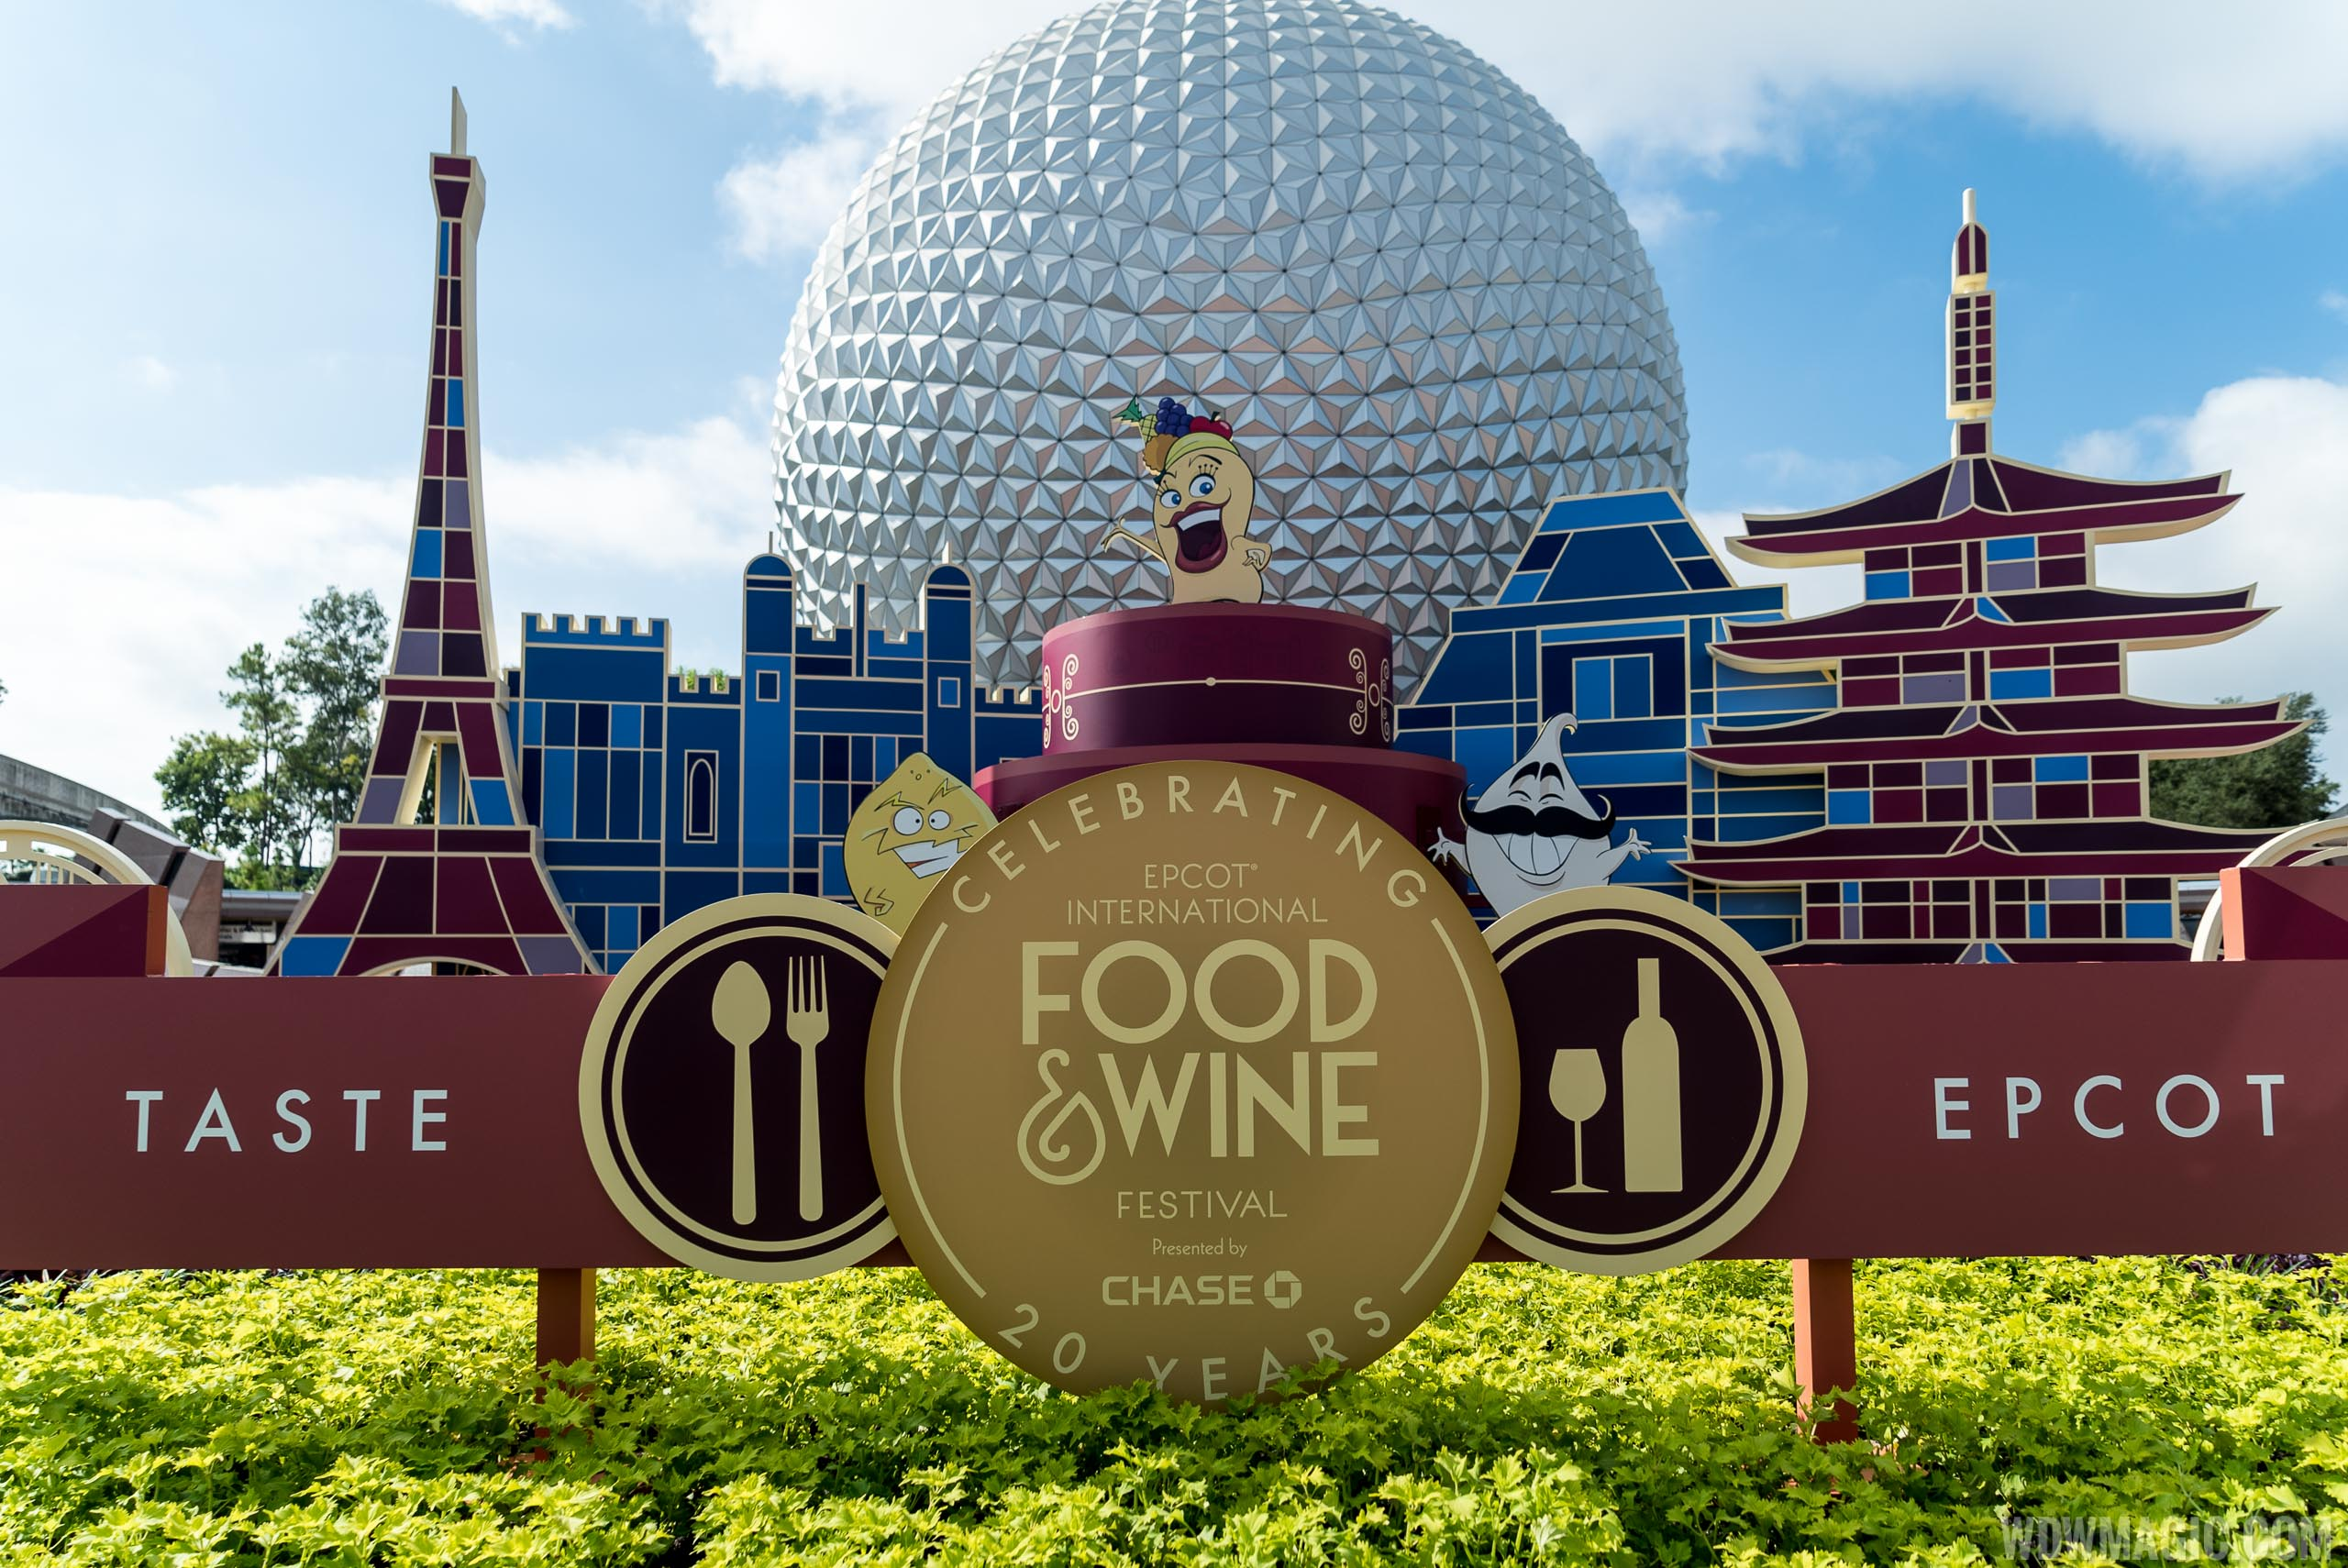 2020 Epcot Food And Wine Festival Menu 2019 Epcot Food and Wine Festival to be the longest ever